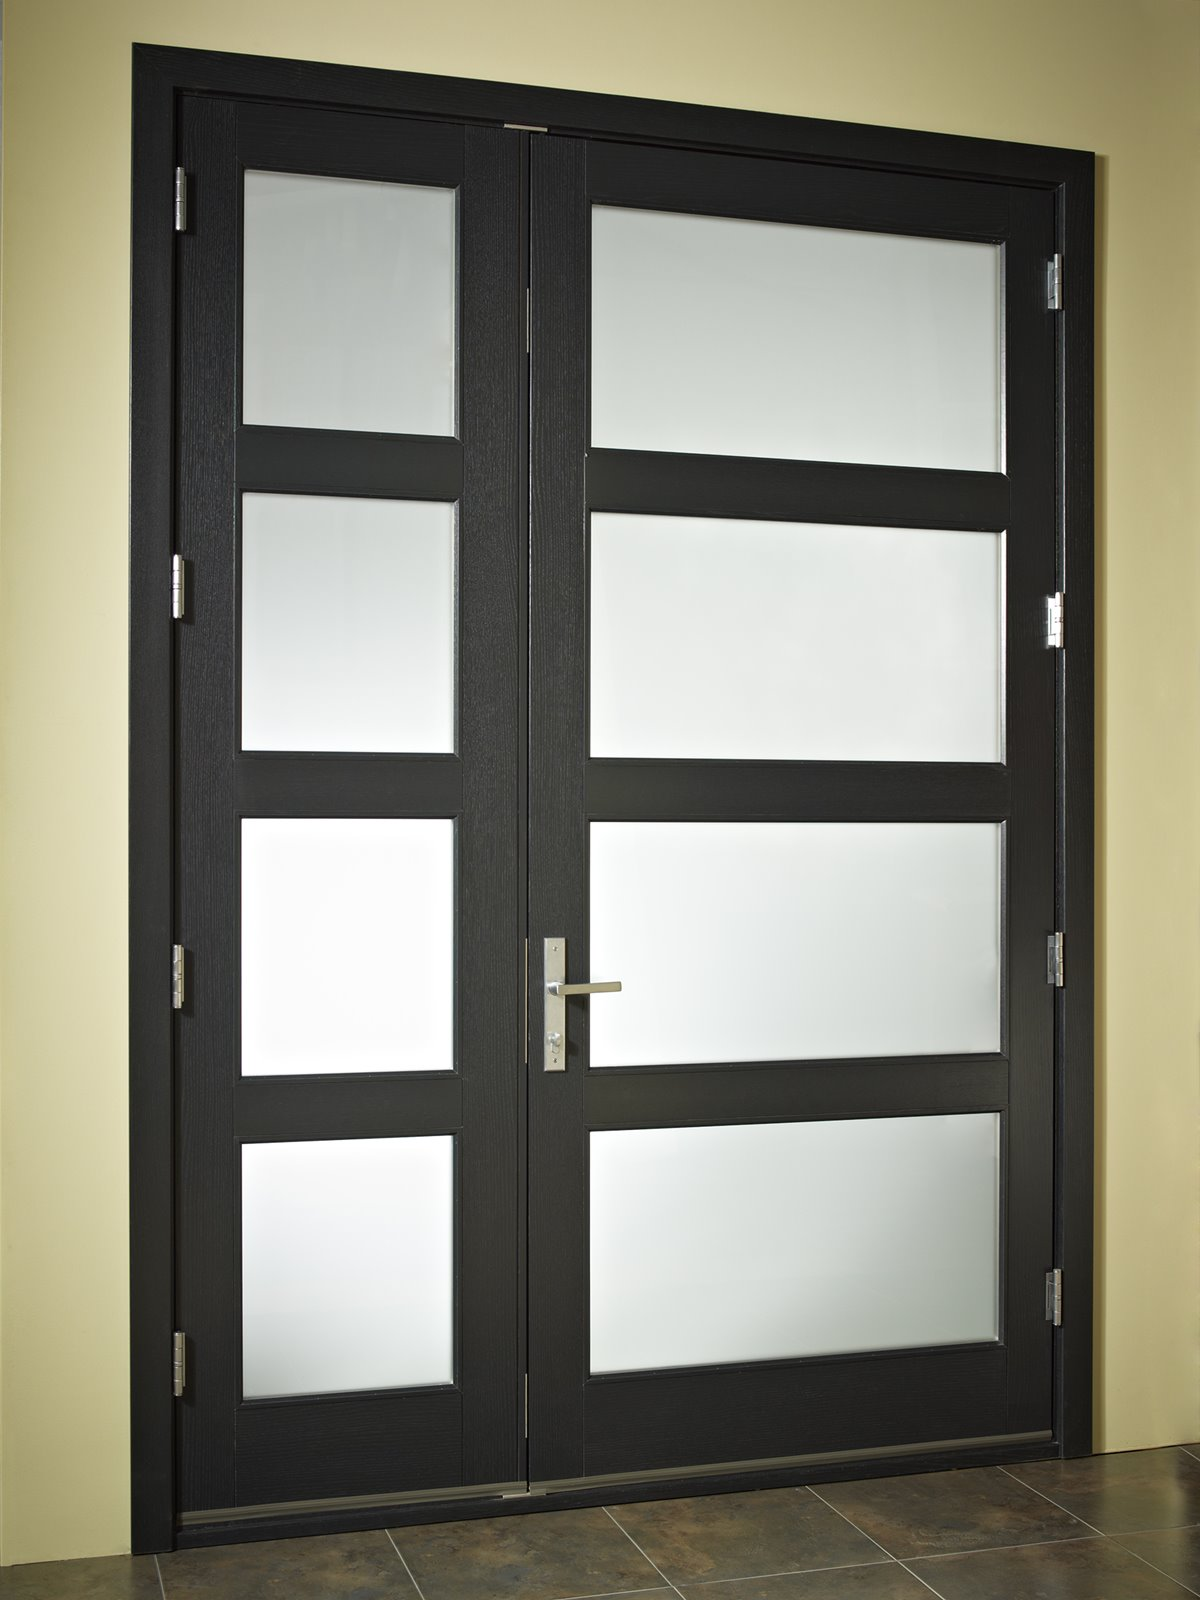 Minimalist door minimalist door design modern for Minimalist door design